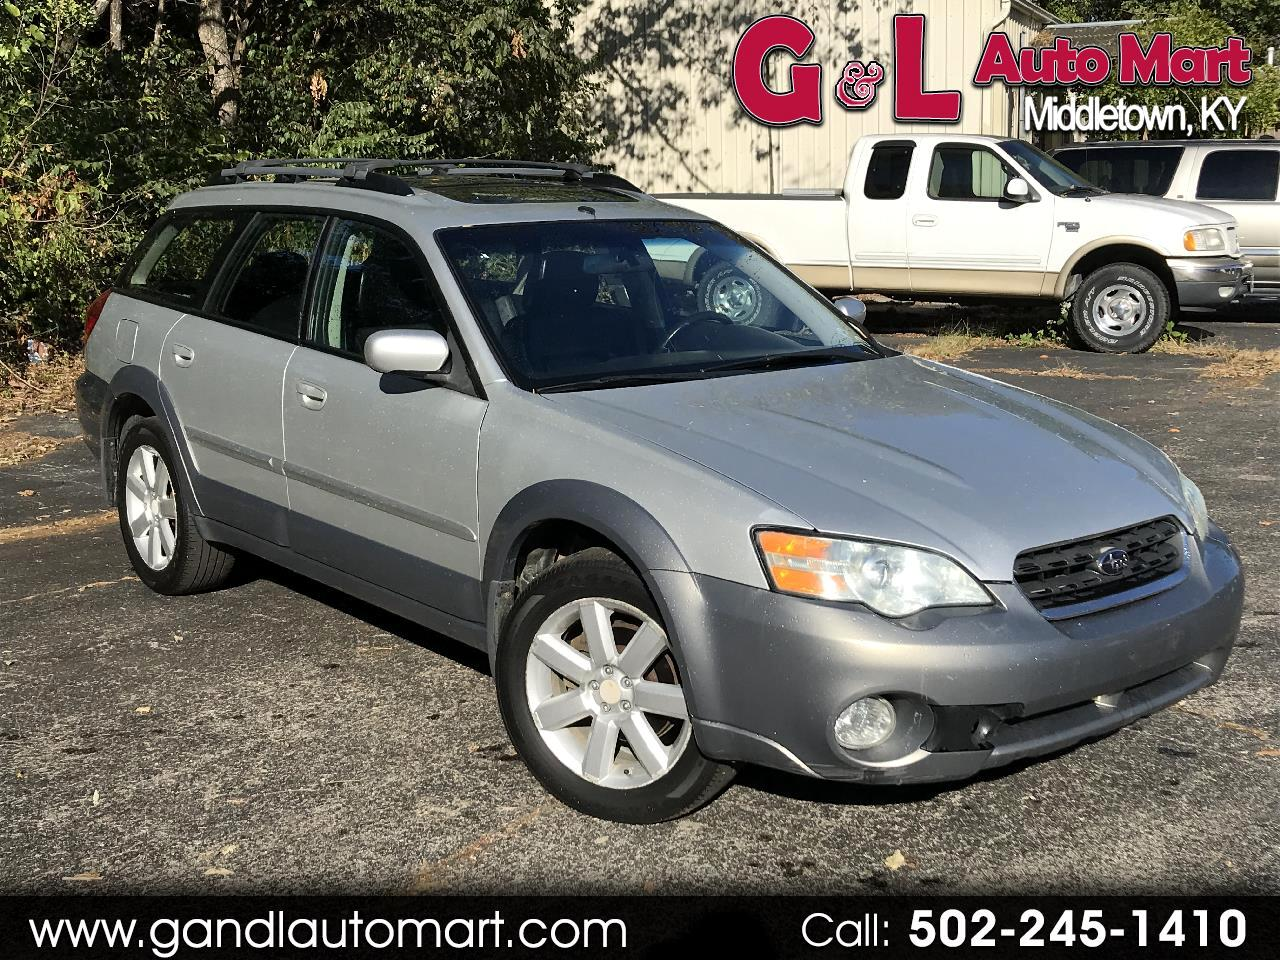 2007 Subaru Legacy Wagon 4dr H4 AT Outback Ltd